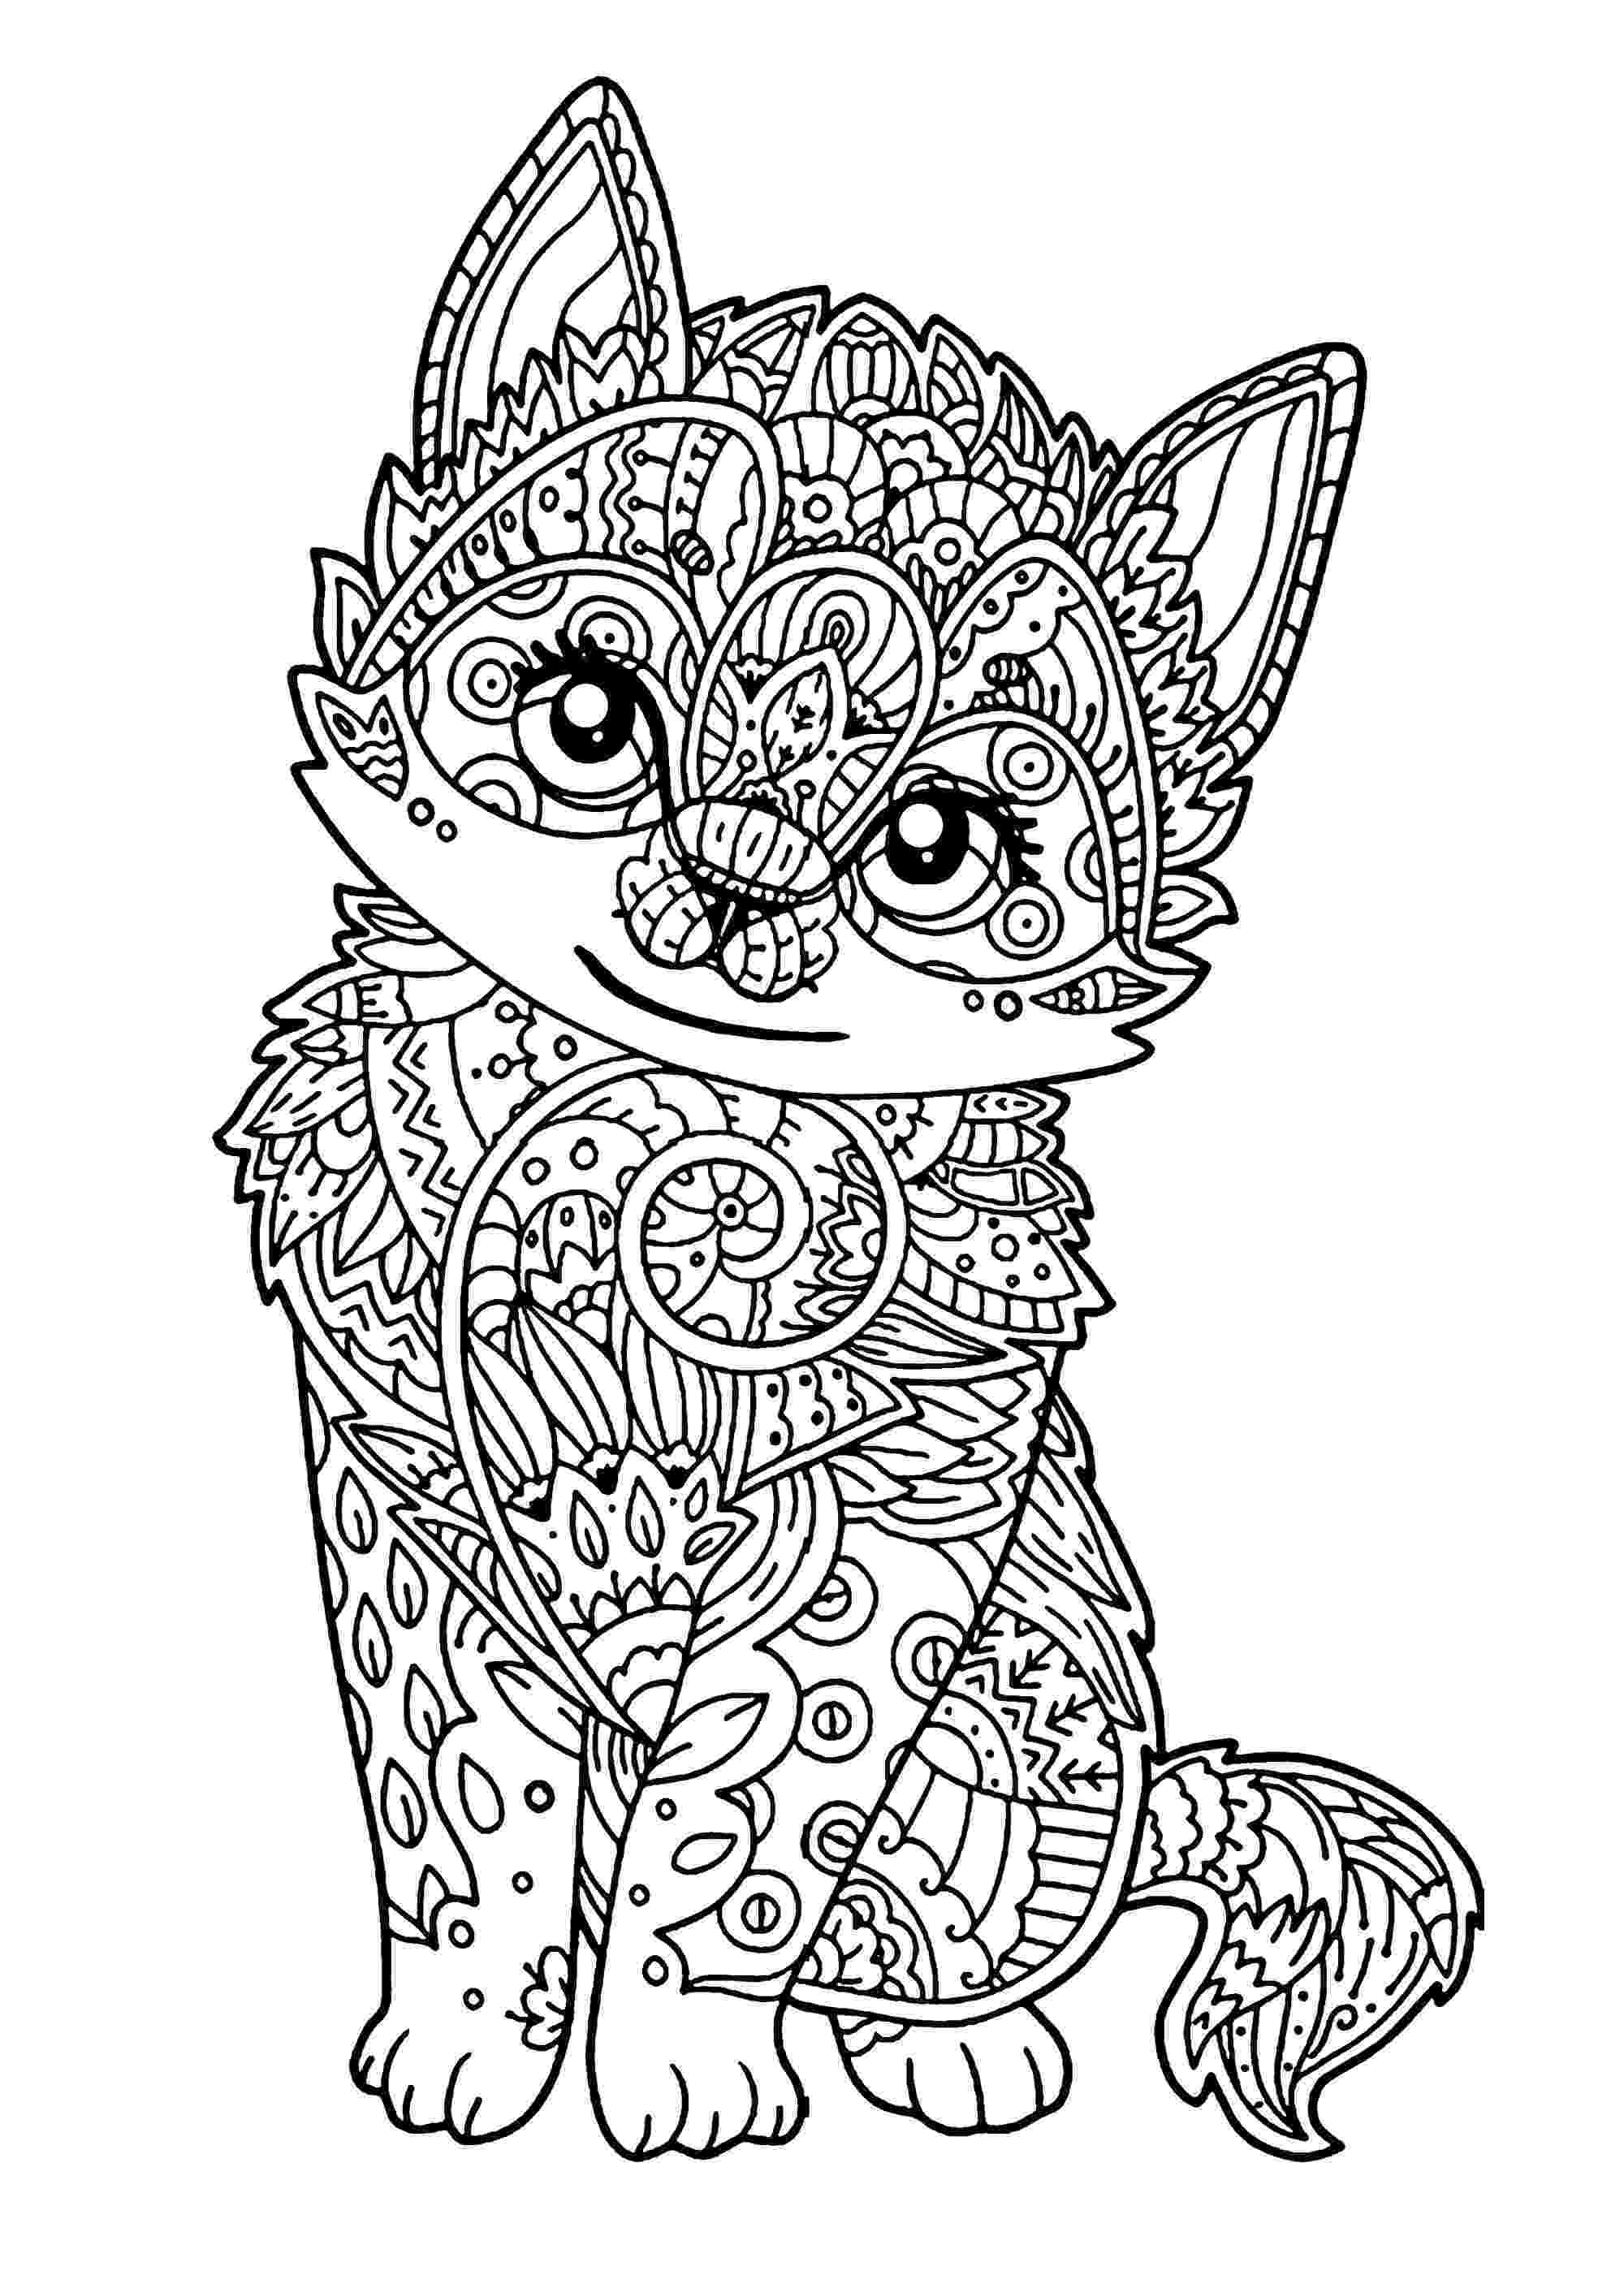 cat coloring pages cute cat coloring pages to download and print for free cat pages coloring